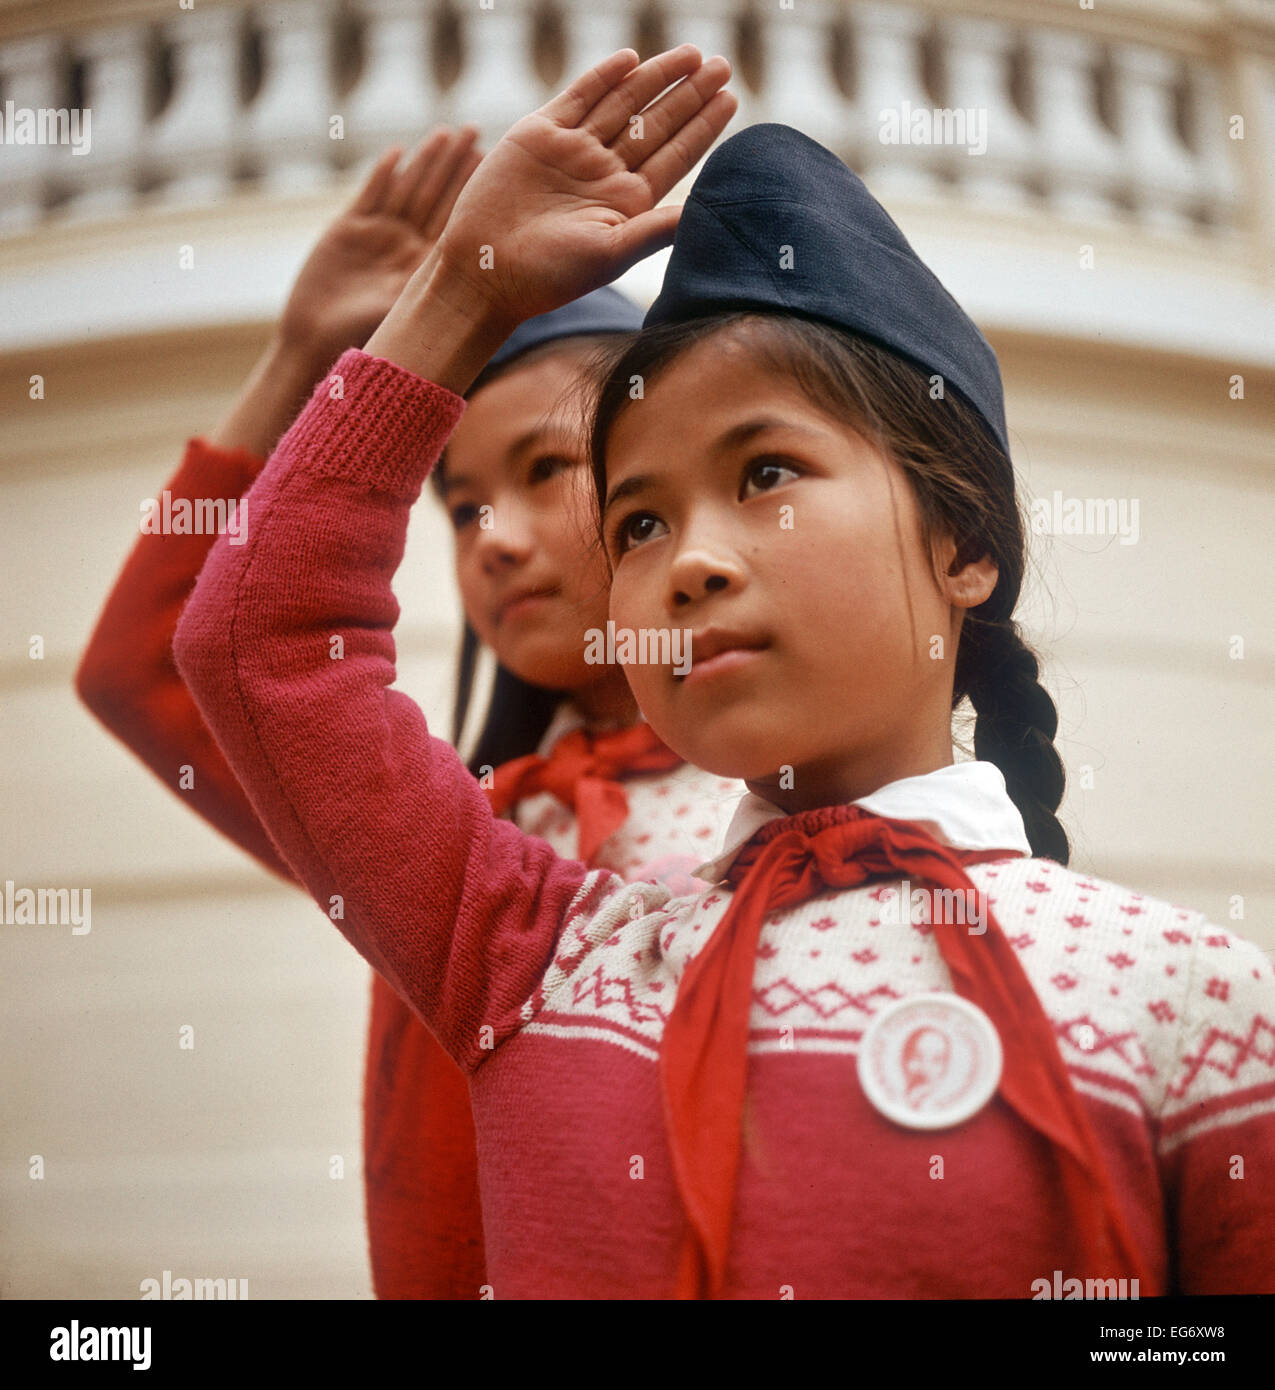 Two vietnamese girls with cap and red scarf the hand up for the two vietnamese girls with cap and red scarf the hand up for the pioneer greeting photographed in march 1973 in north vietnam only a few weeks before m4hsunfo Choice Image